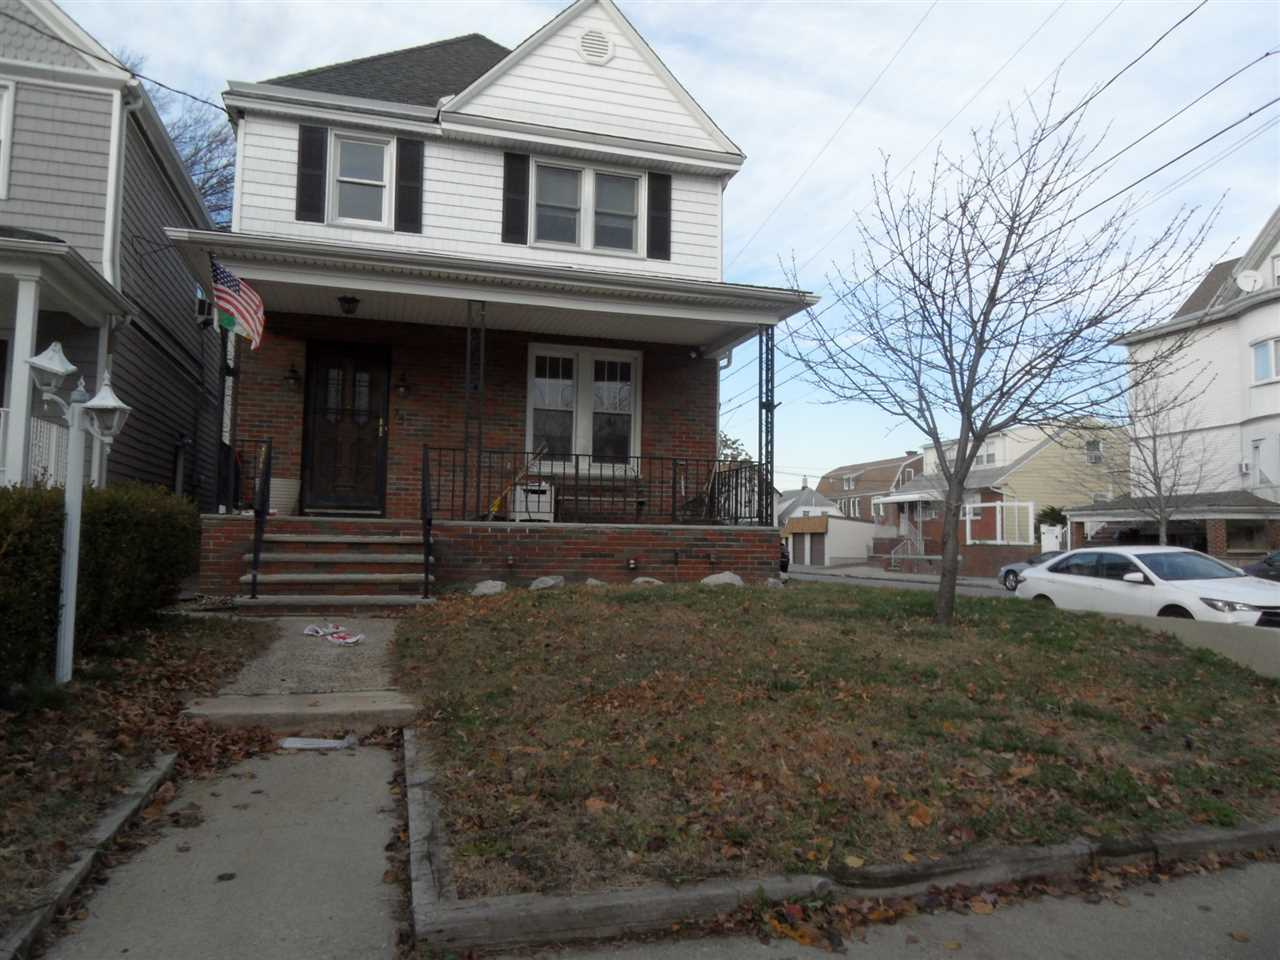 73 WEST 5TH ST, Bayonne, NJ 07002